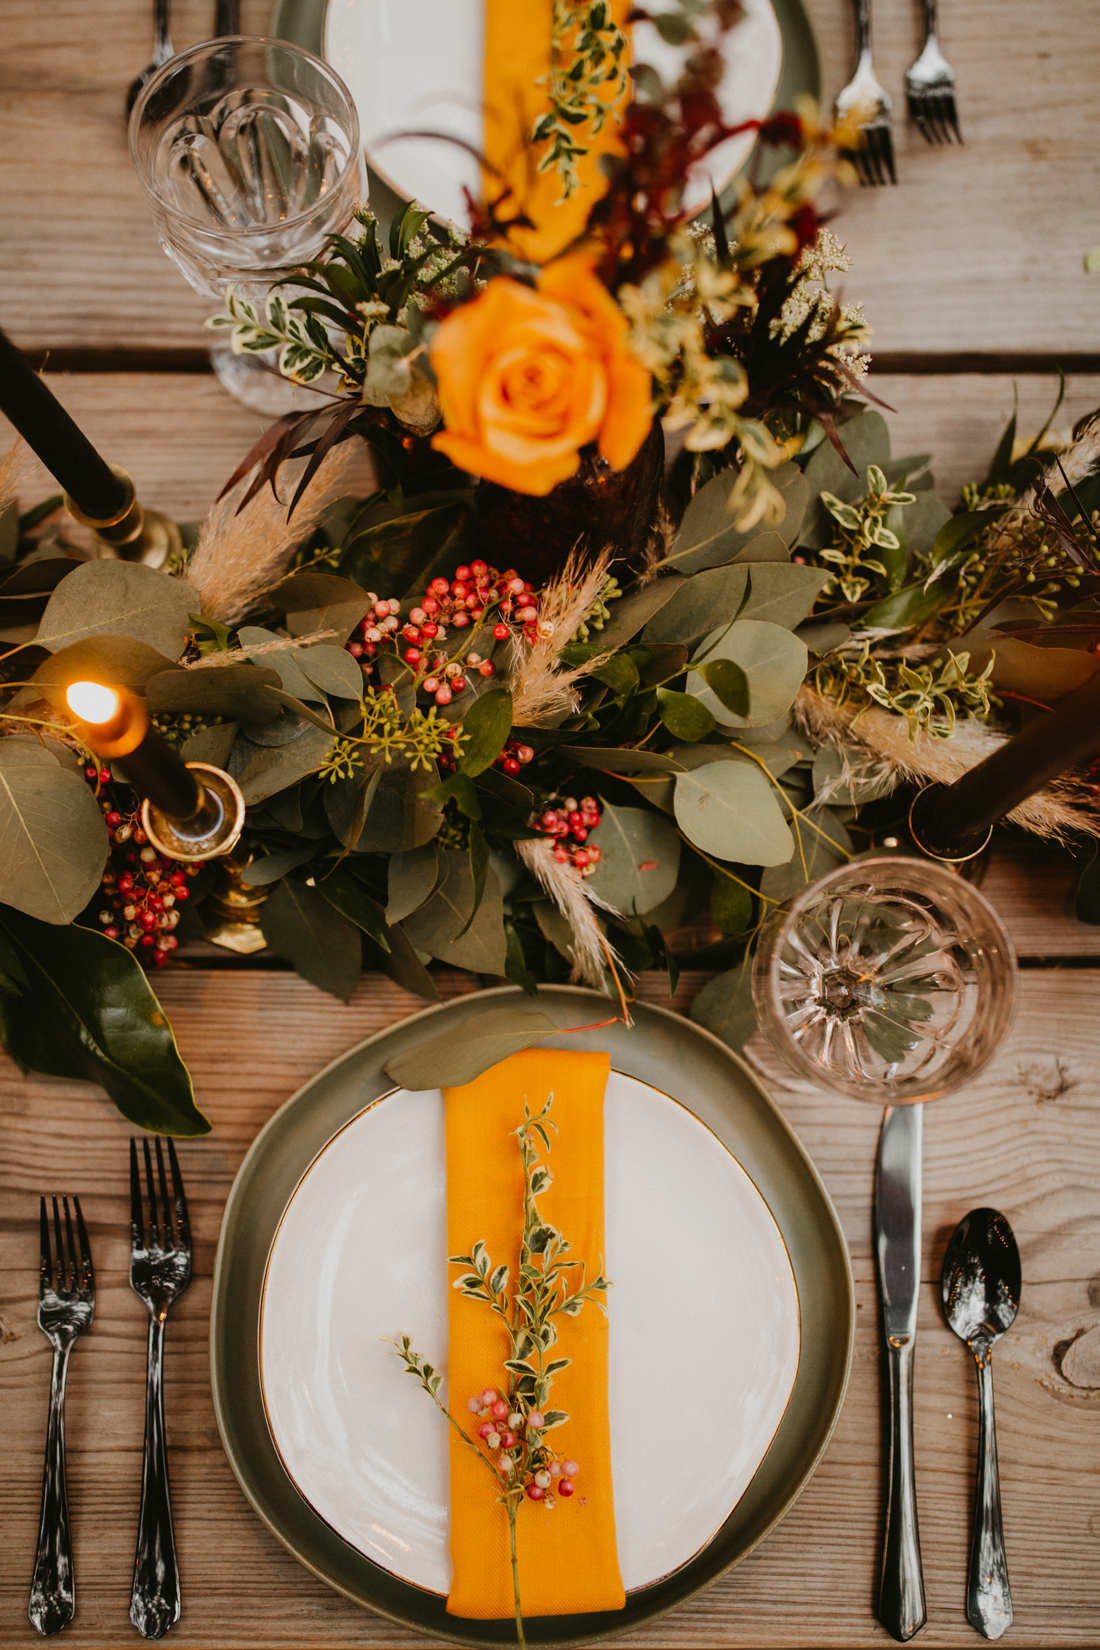 orange accented place setting with floral centerpiece